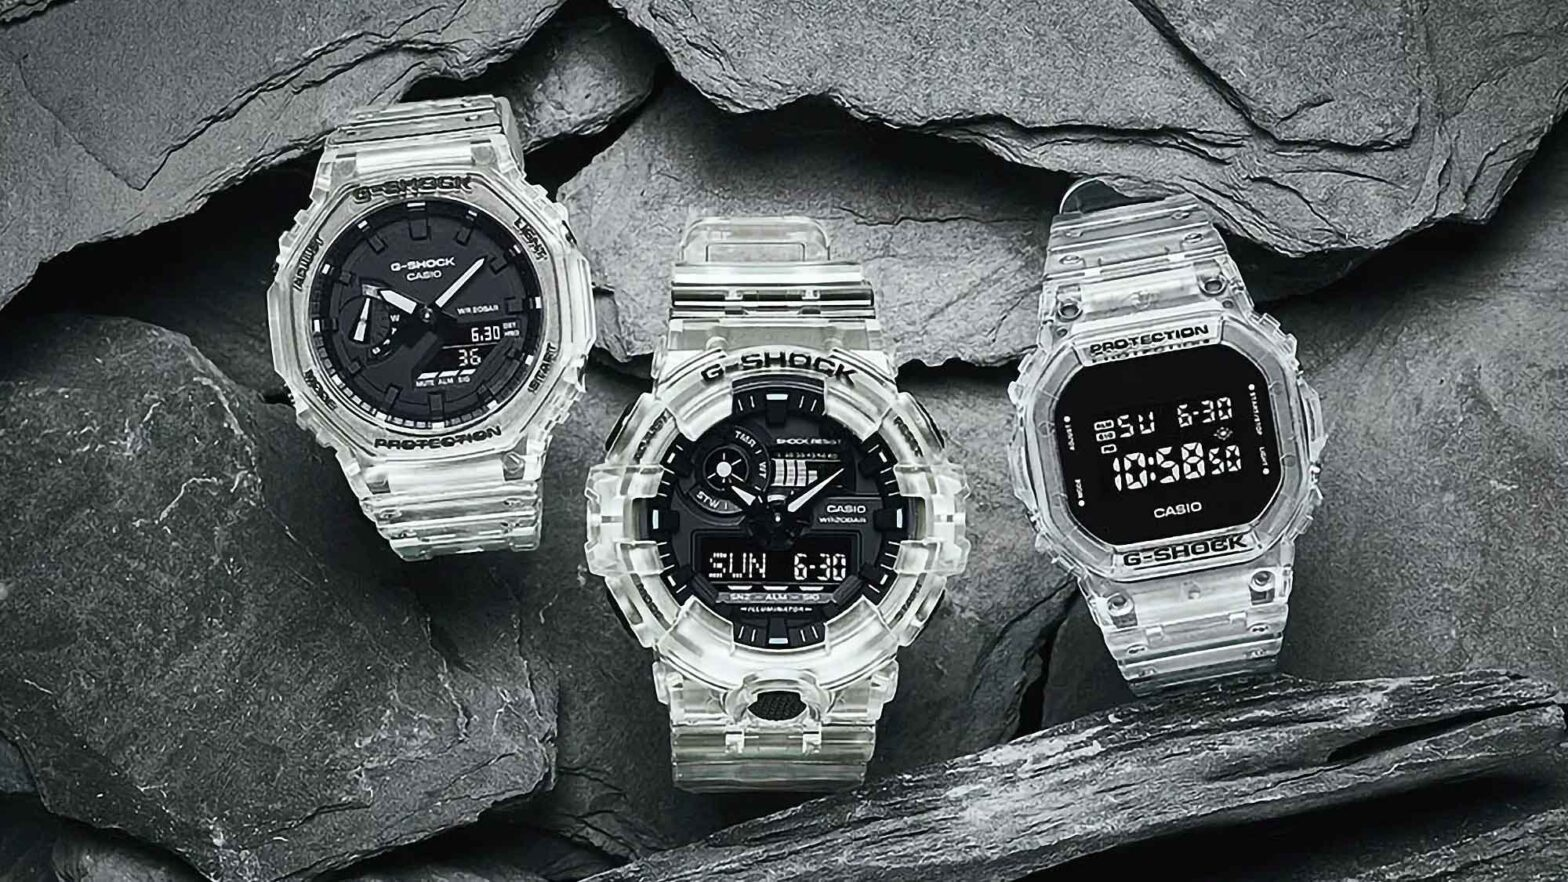 New Casio G-Shock Semi-transparent Watches